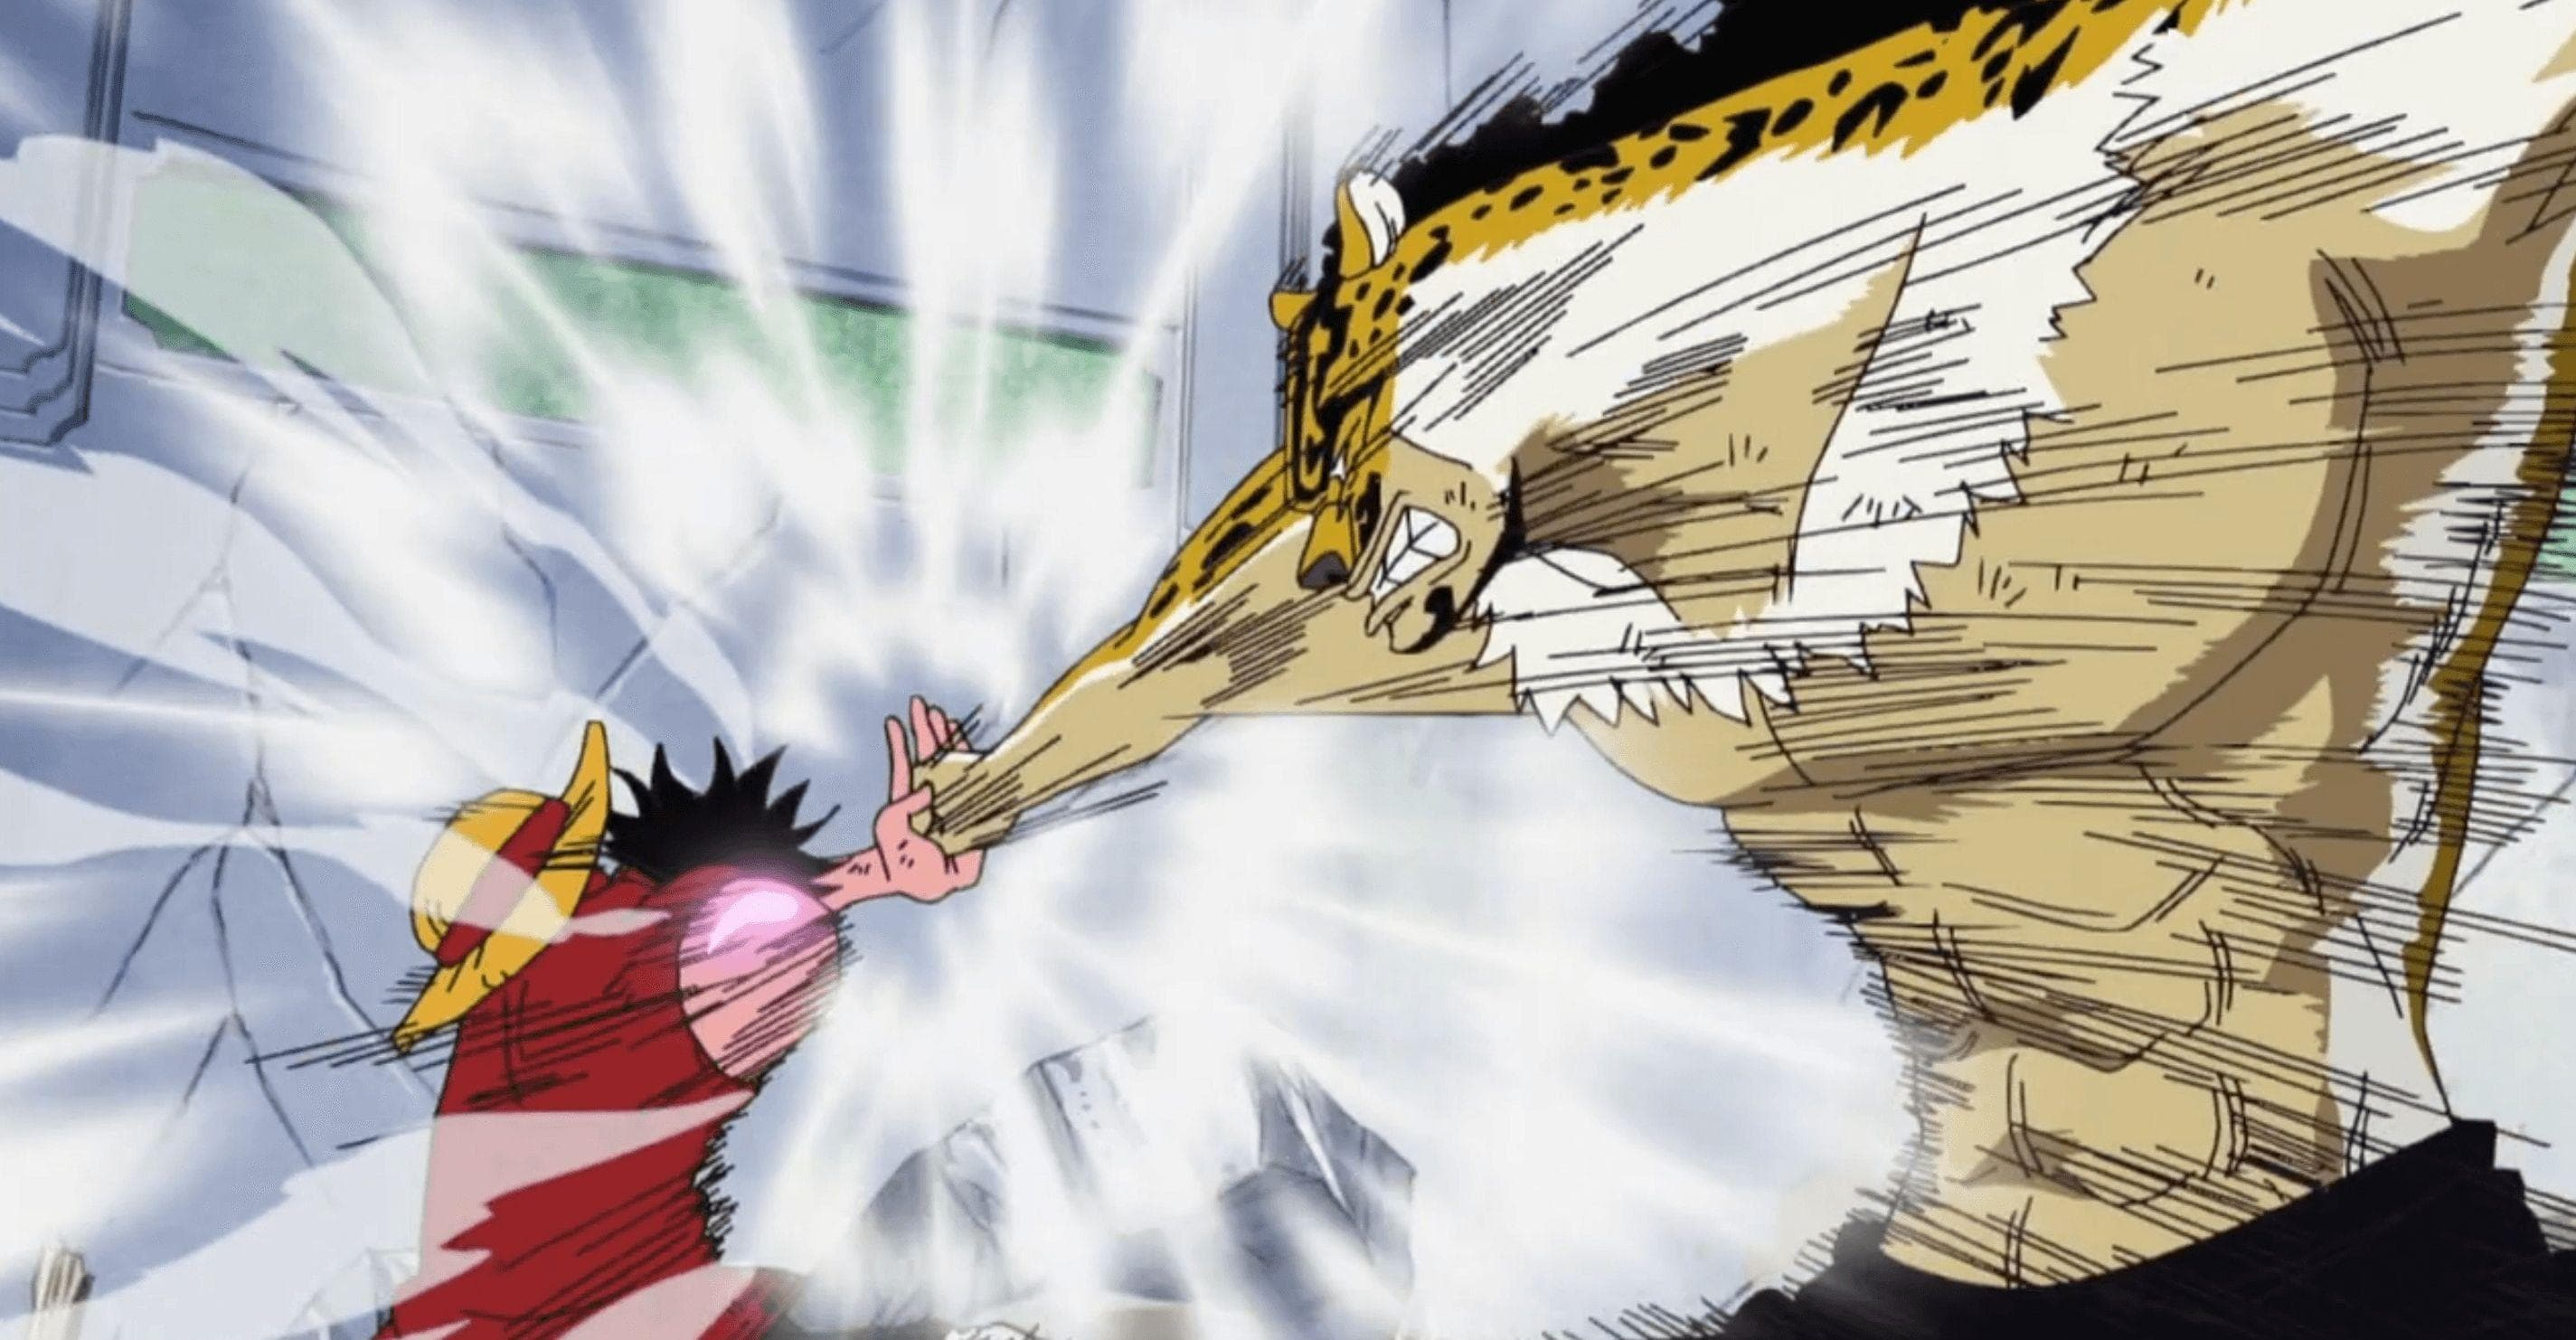 27/10/2019· this is a fanfic of one piece where the mc would follow luffy till the end, as noted in the synopsis, you can read this while reading the manga because i myself write this with the manga on the other side of the screen. The 20 Best One Piece Fanfiction Stories